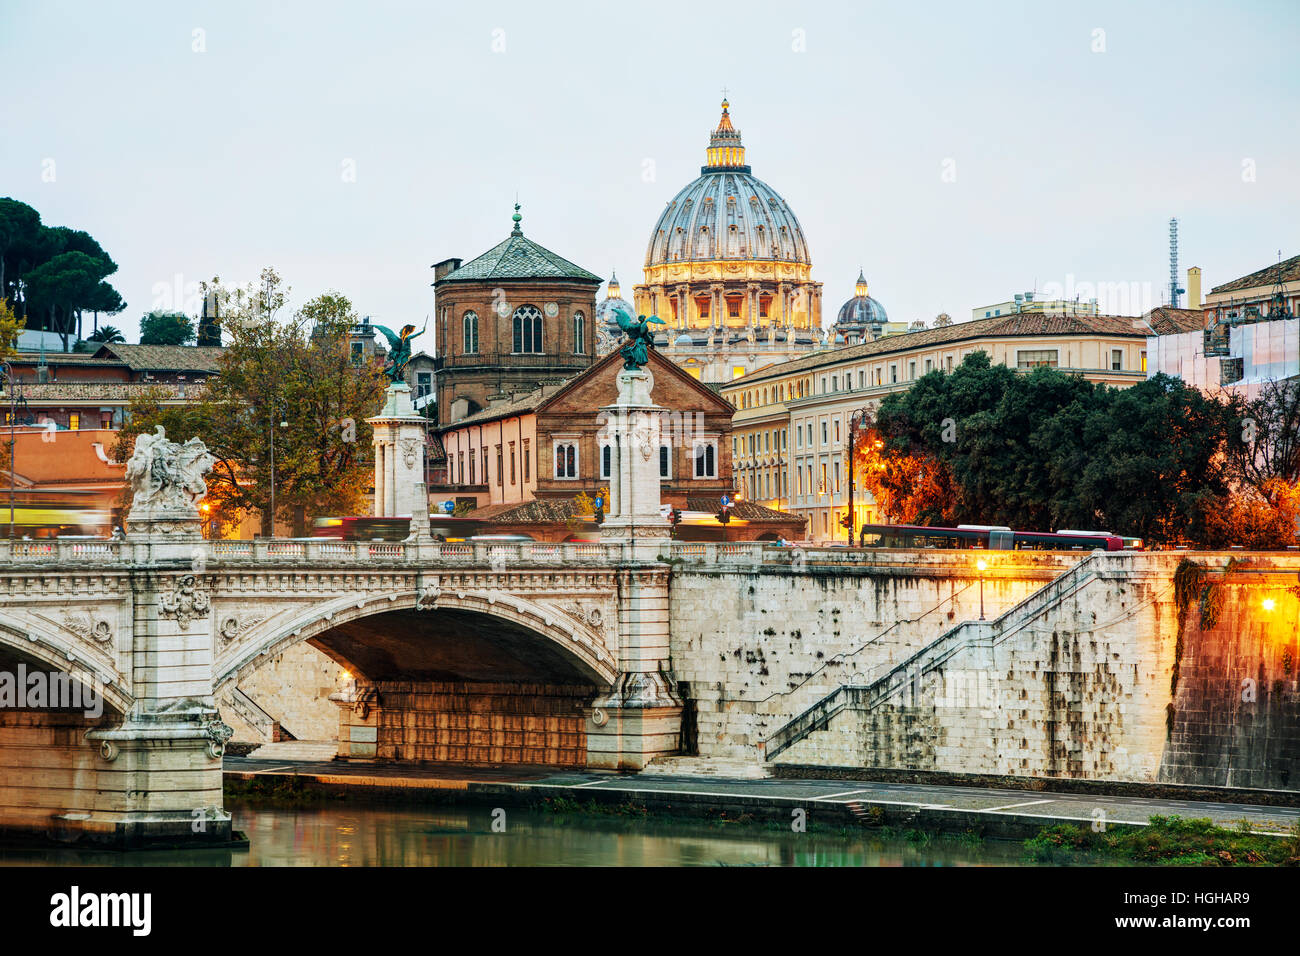 The Papal Basilica of St. Peter in the Vatican city at night - Stock Image